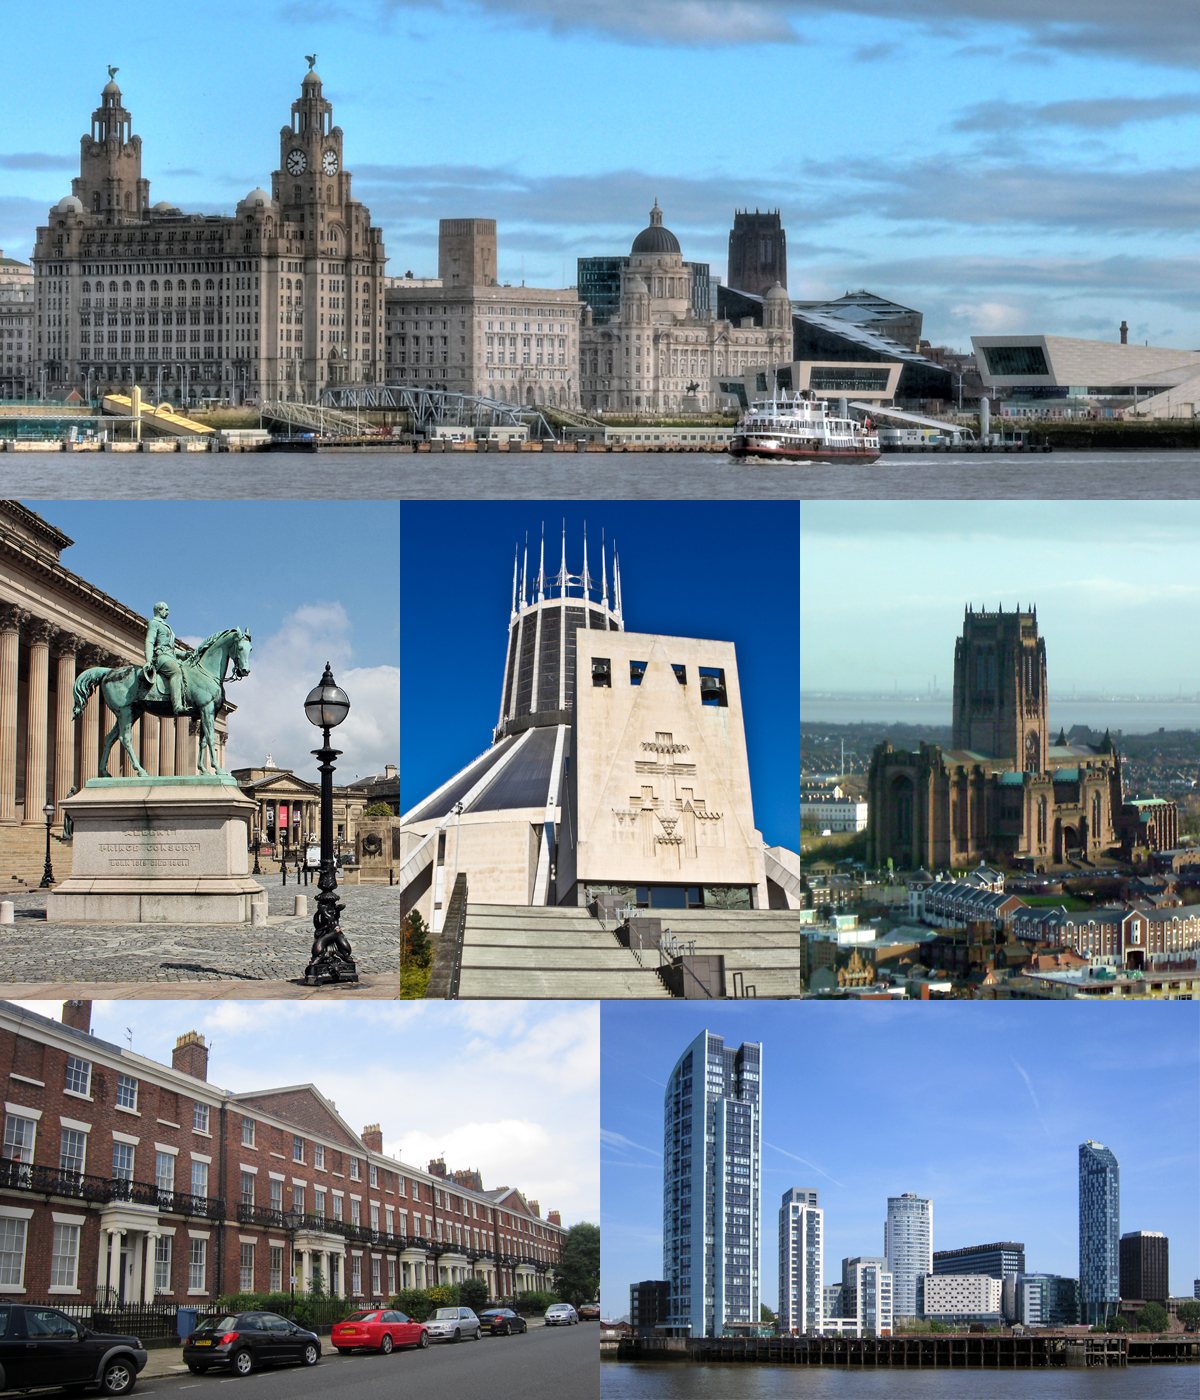 Depiction of Liverpool